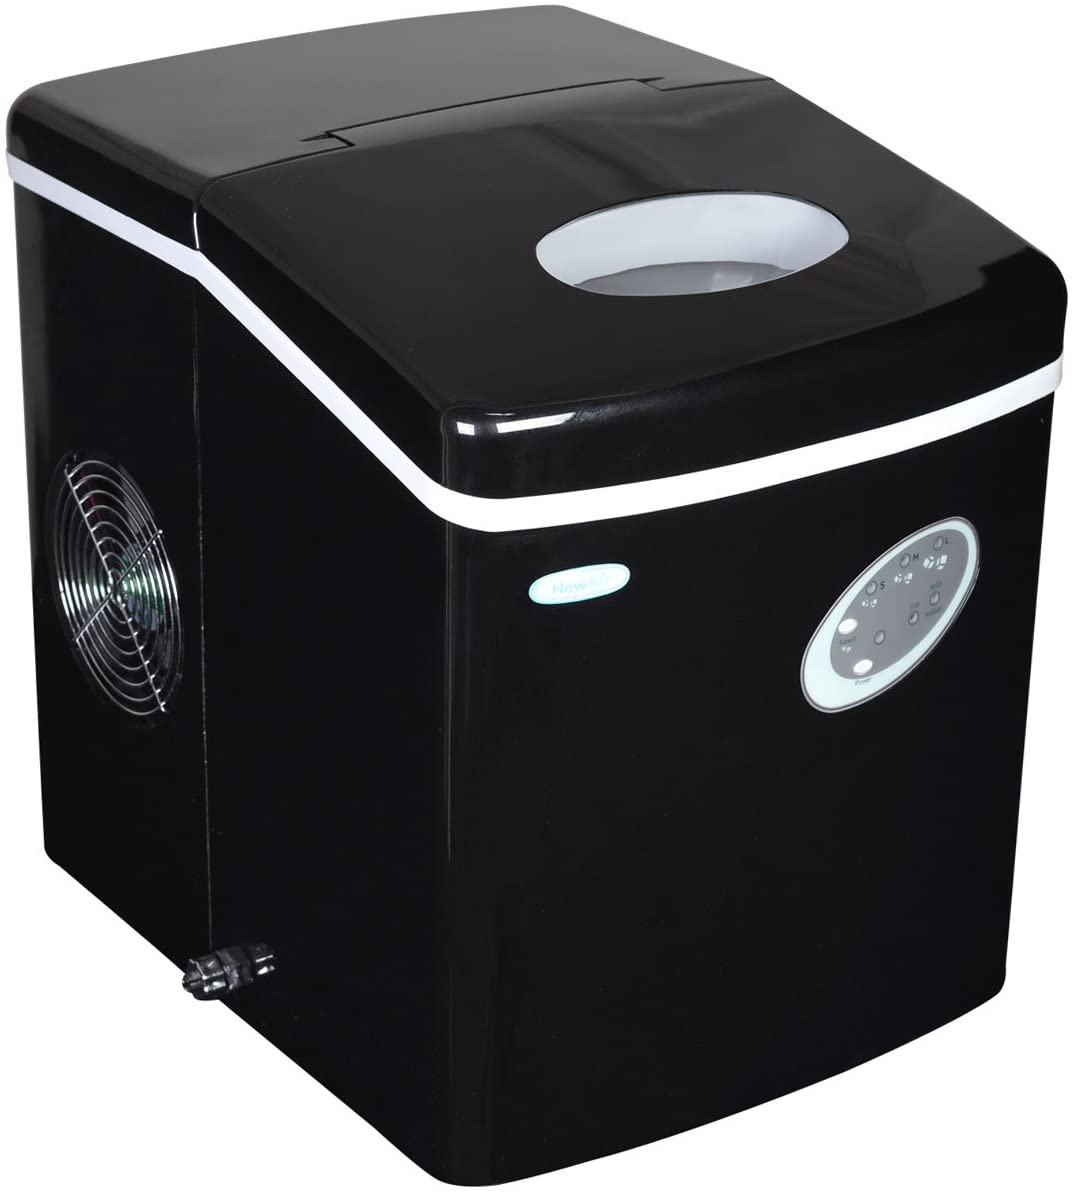 NewAir Portable Countertop Ice Maker on a white background